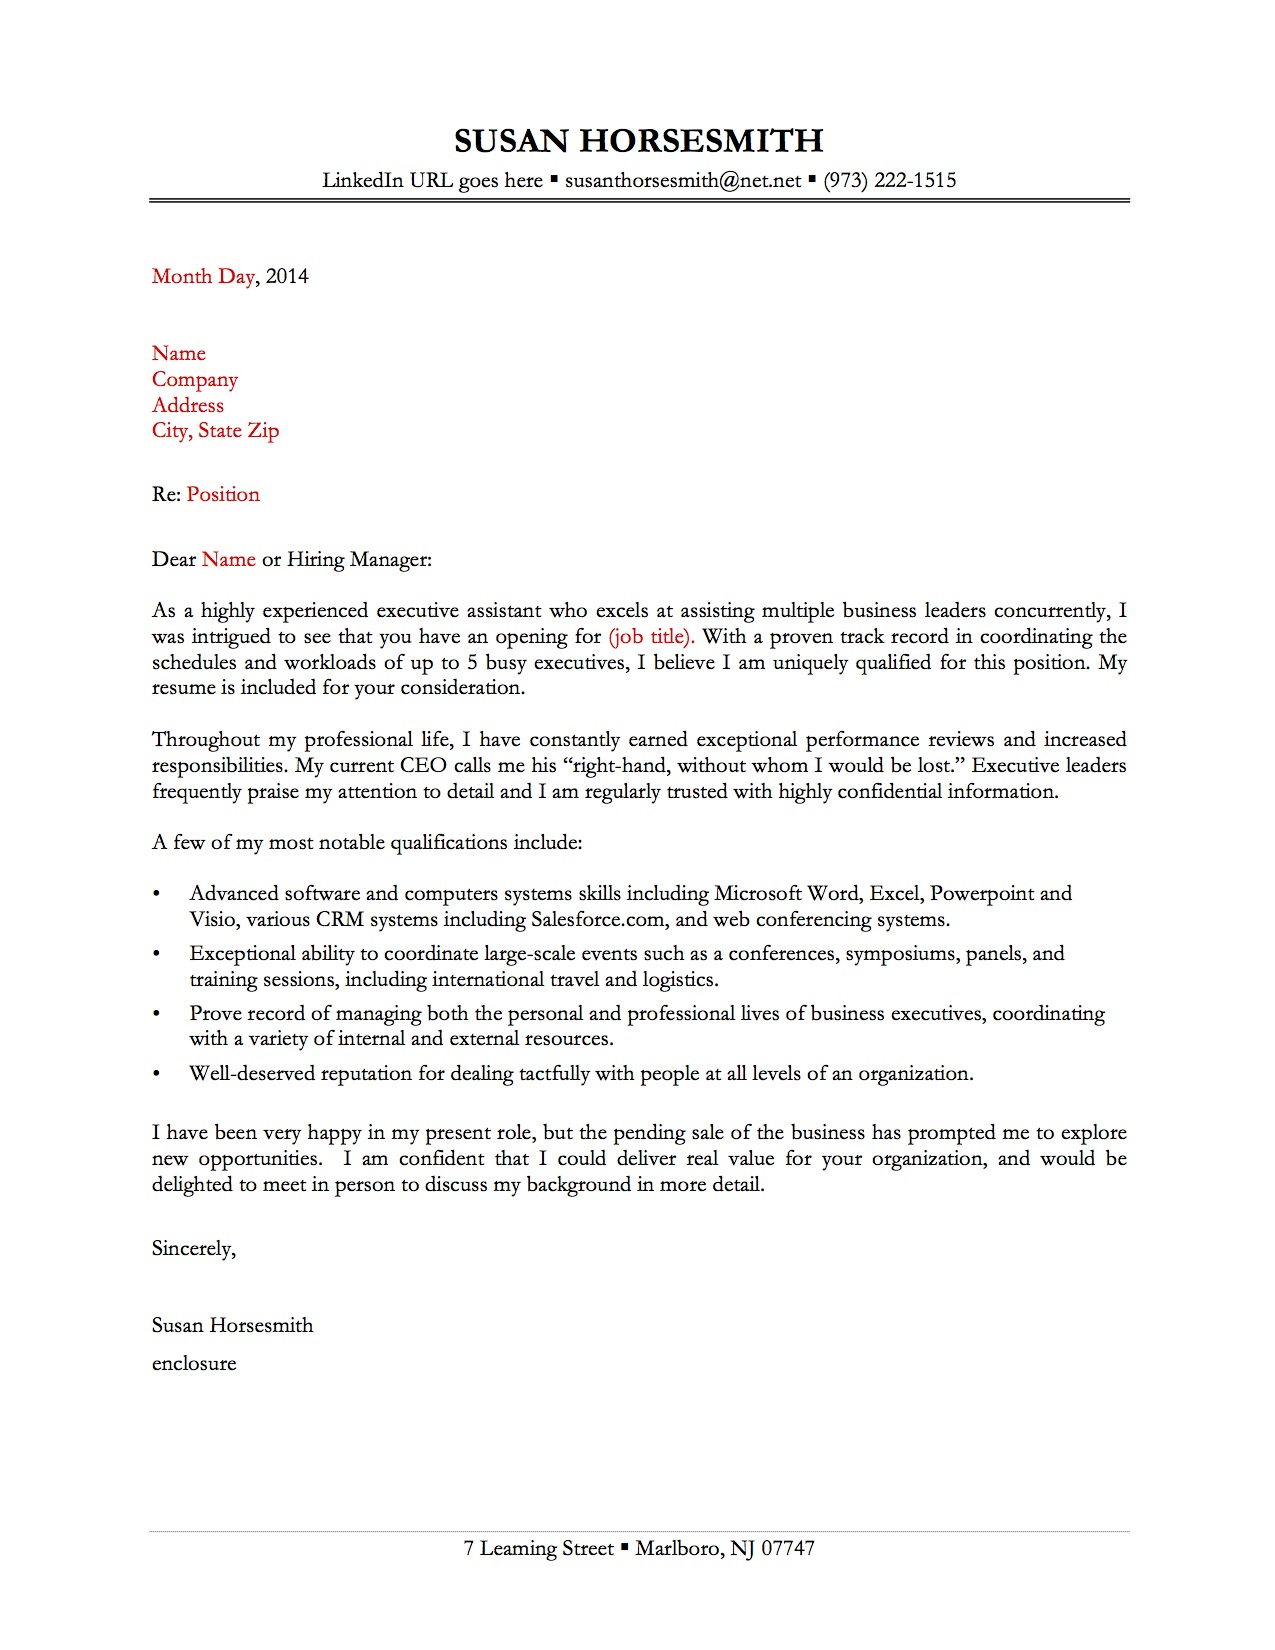 flight attendant cover letter example examples of cover letters sample resume for valet attendant professional cover letter example sample cover letter 1 sample resume for valet attendanthtml flight attendant cover